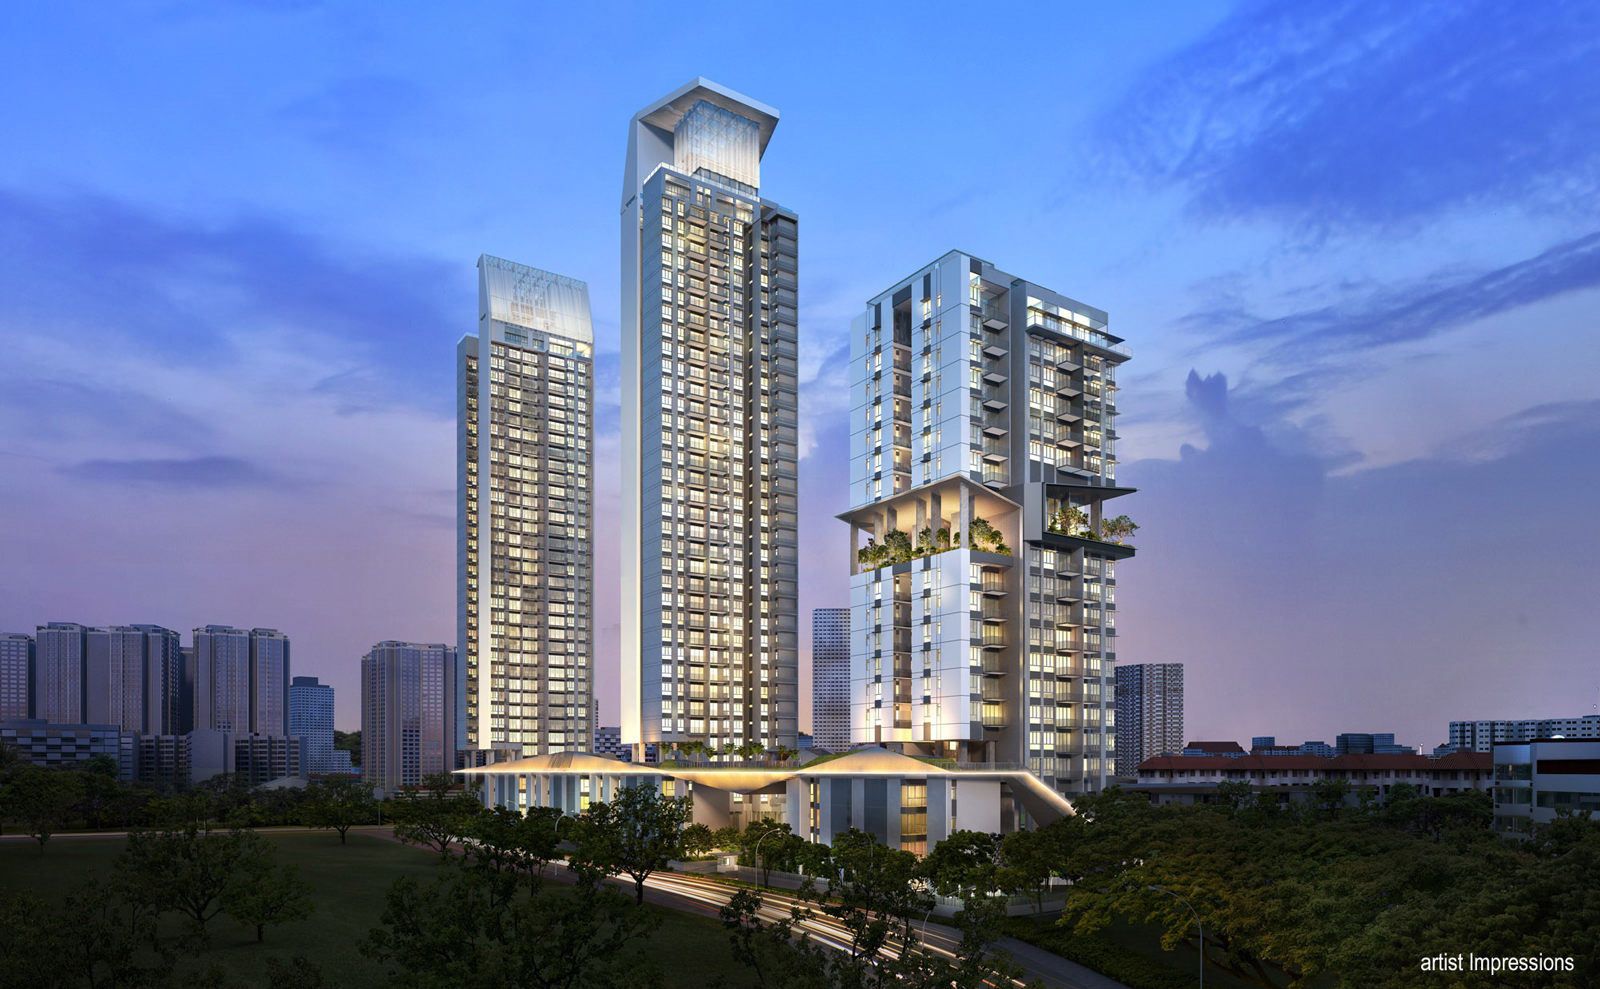 Keppel Land has used VR technology to market Highline Residences, a new condo in Tiong Bahru